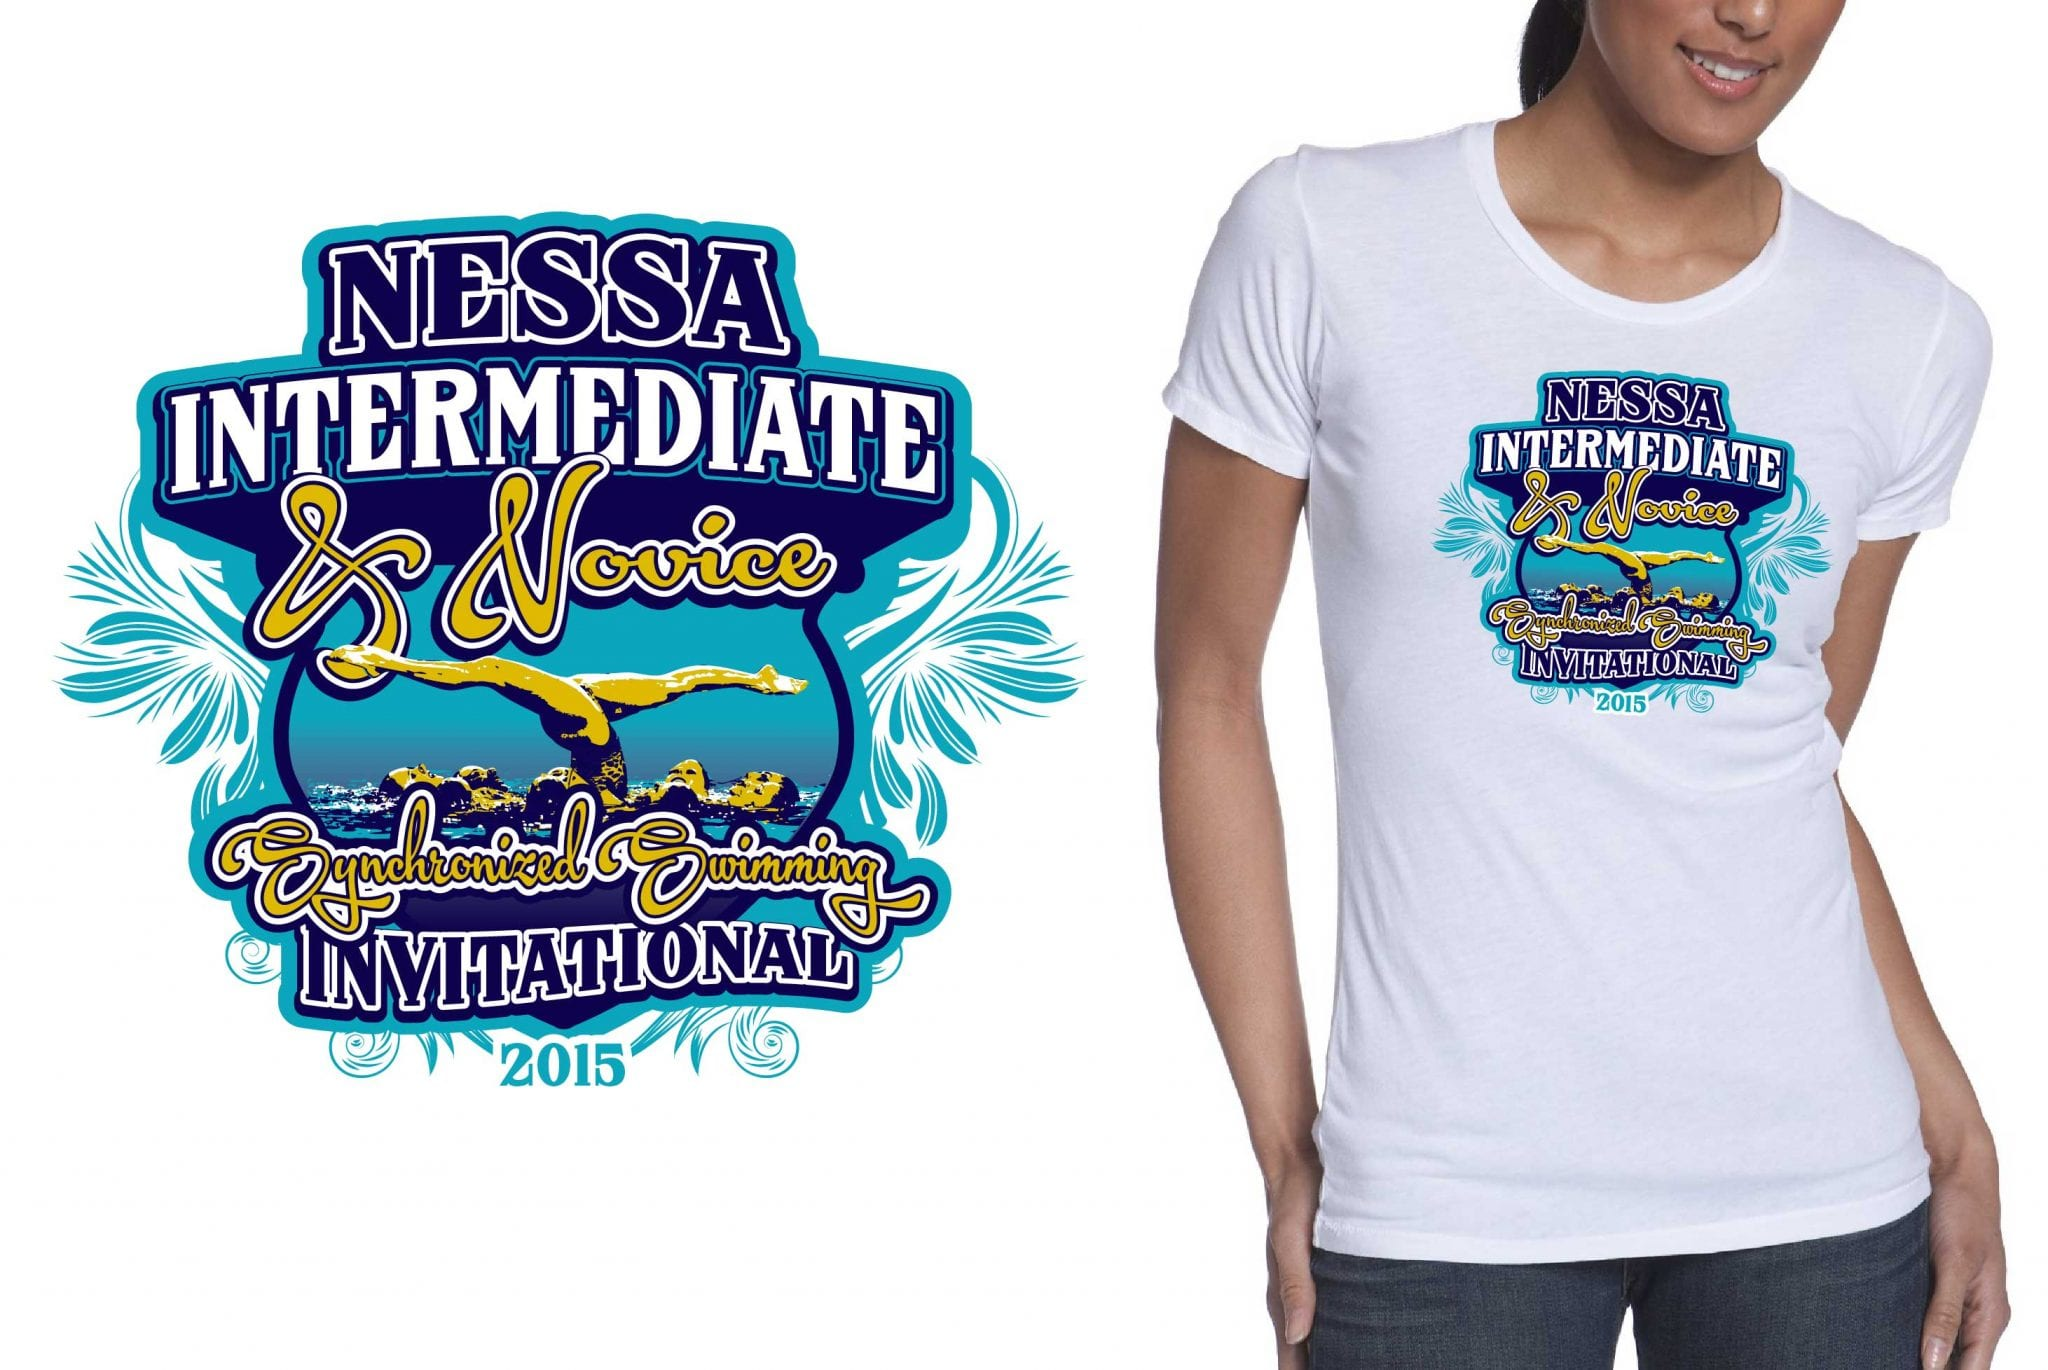 2015 NESSA Intermediate Championships and Novice Invitational cool synchronized swimming tshirt design